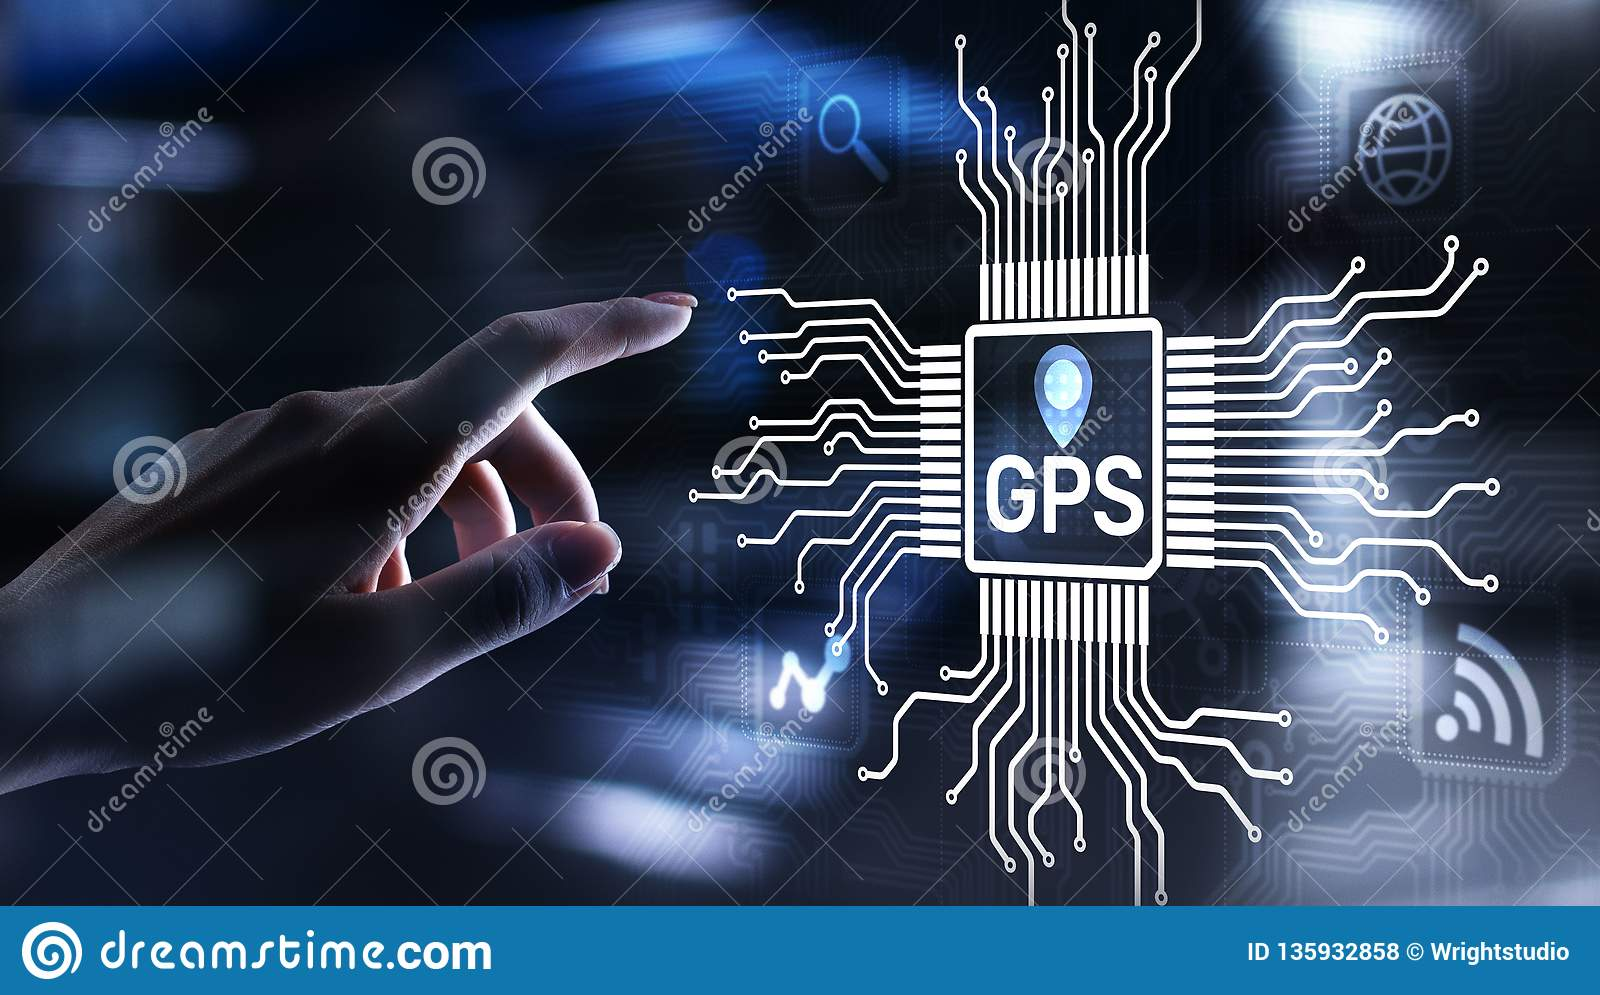 GPS - Global Positioning System, Navigation Tracking Control Technology concept.